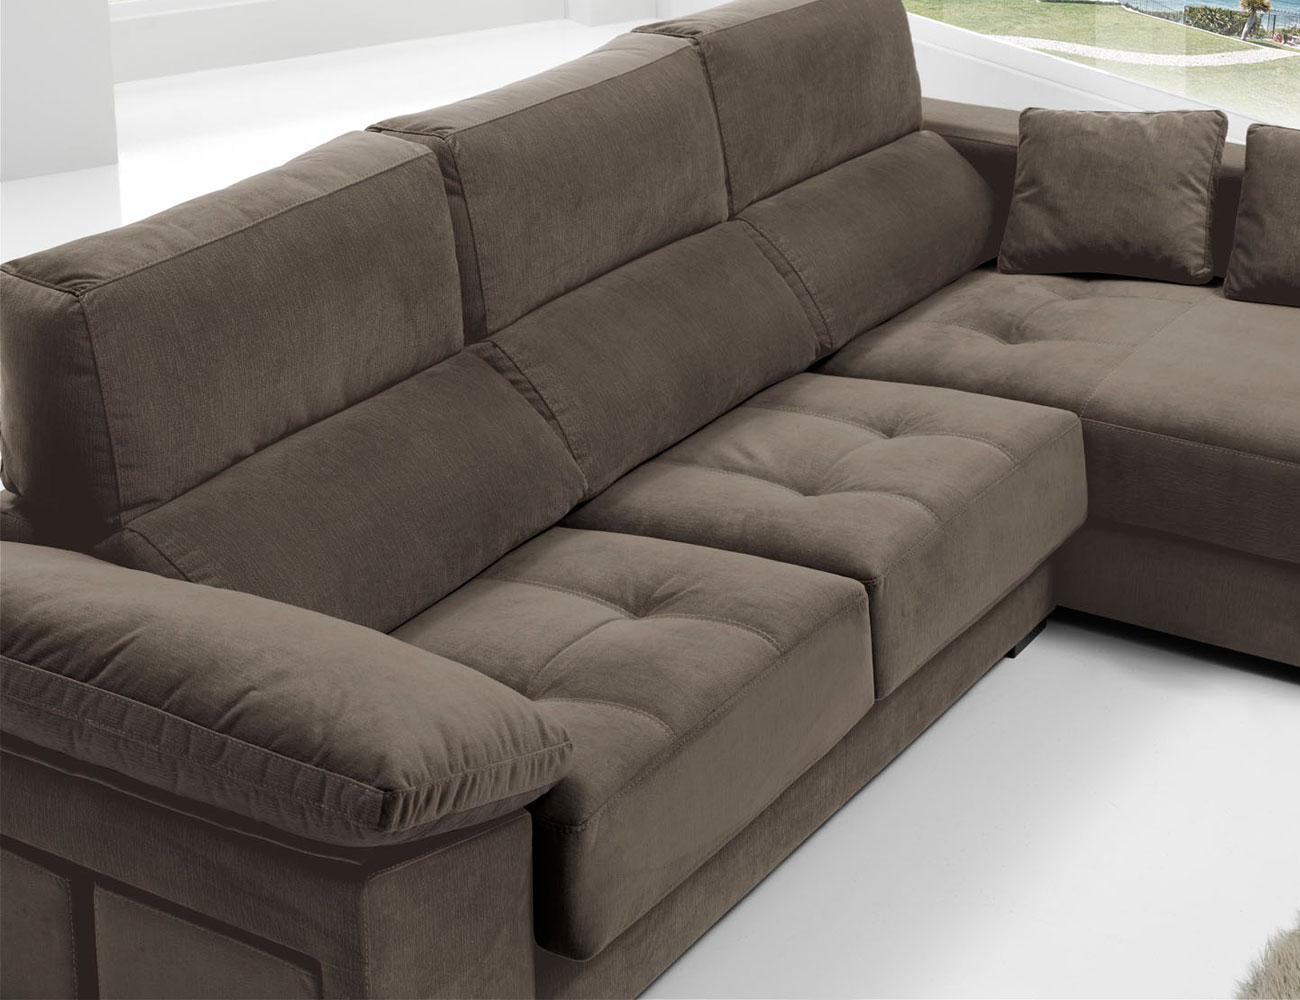 Sofa chaiselongue anti manchas bering pouf 253